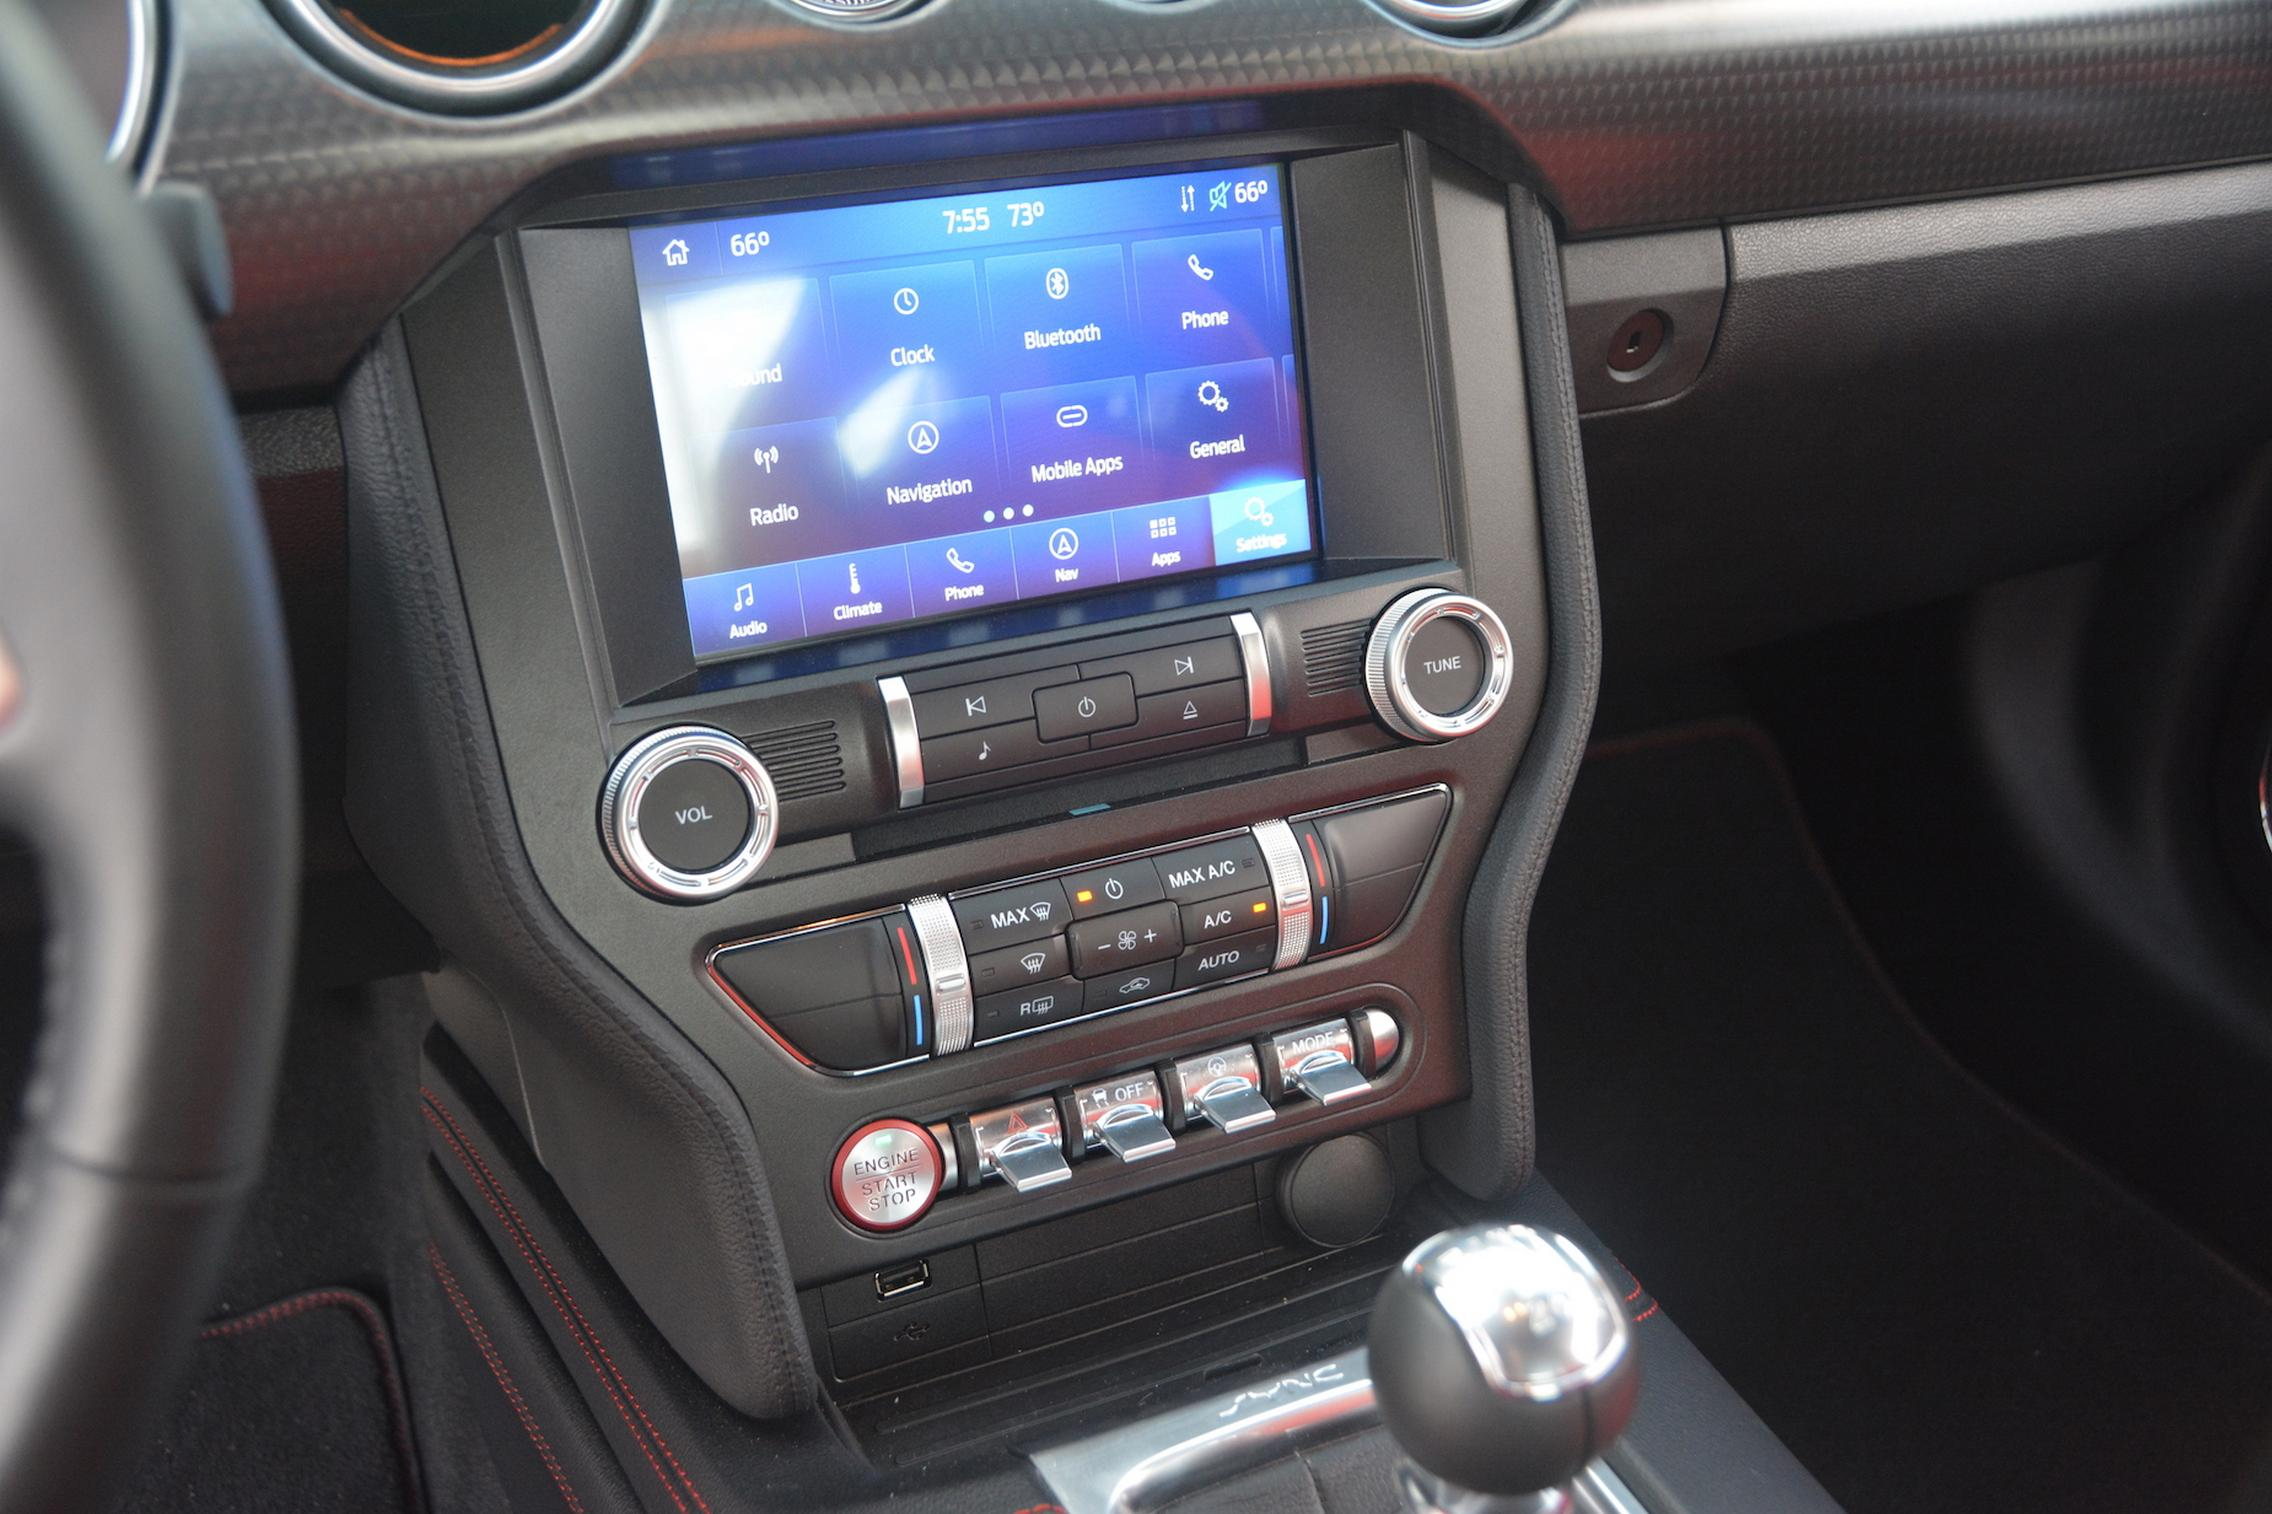 2021 Ford Mustang EcoBoost infotainment